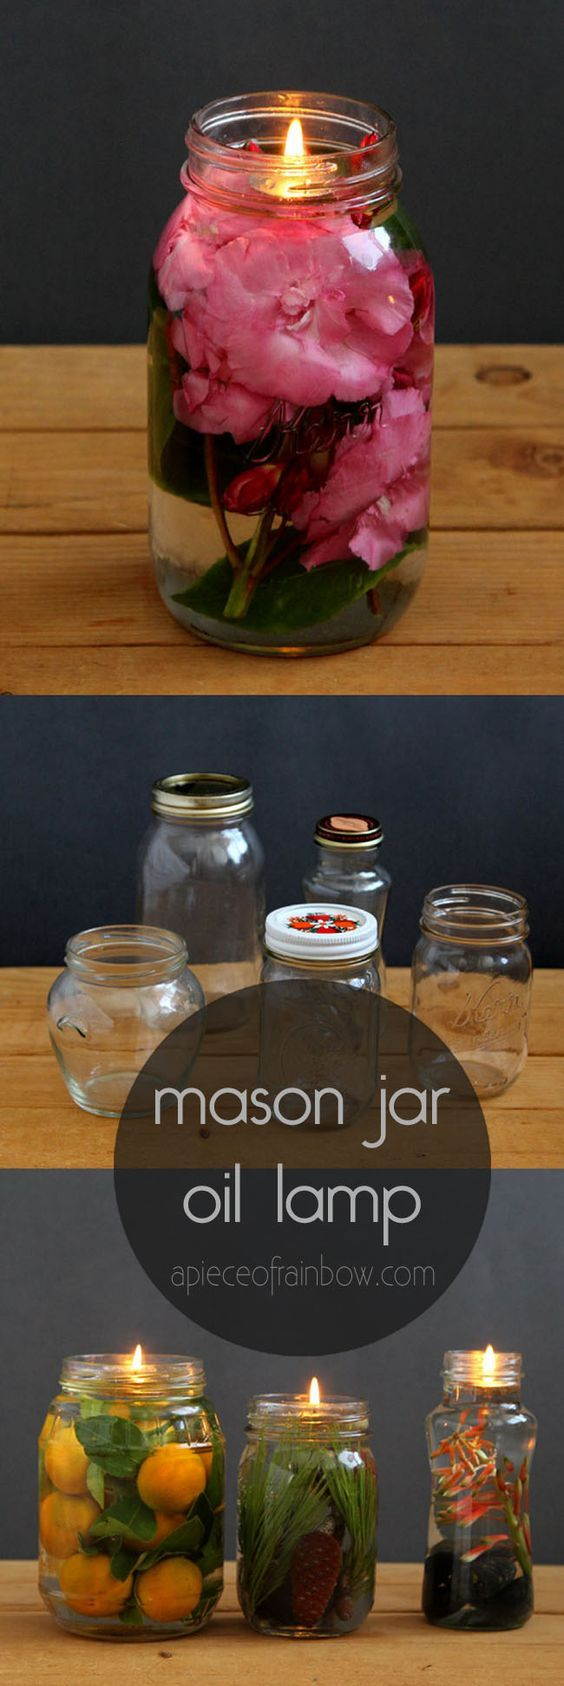 Make gorgeous oil lamp from mason jars and glass bottles. Safer than candles, it takes only 2 minutes to make using vegetable oils and water! via @apieceofrainbow